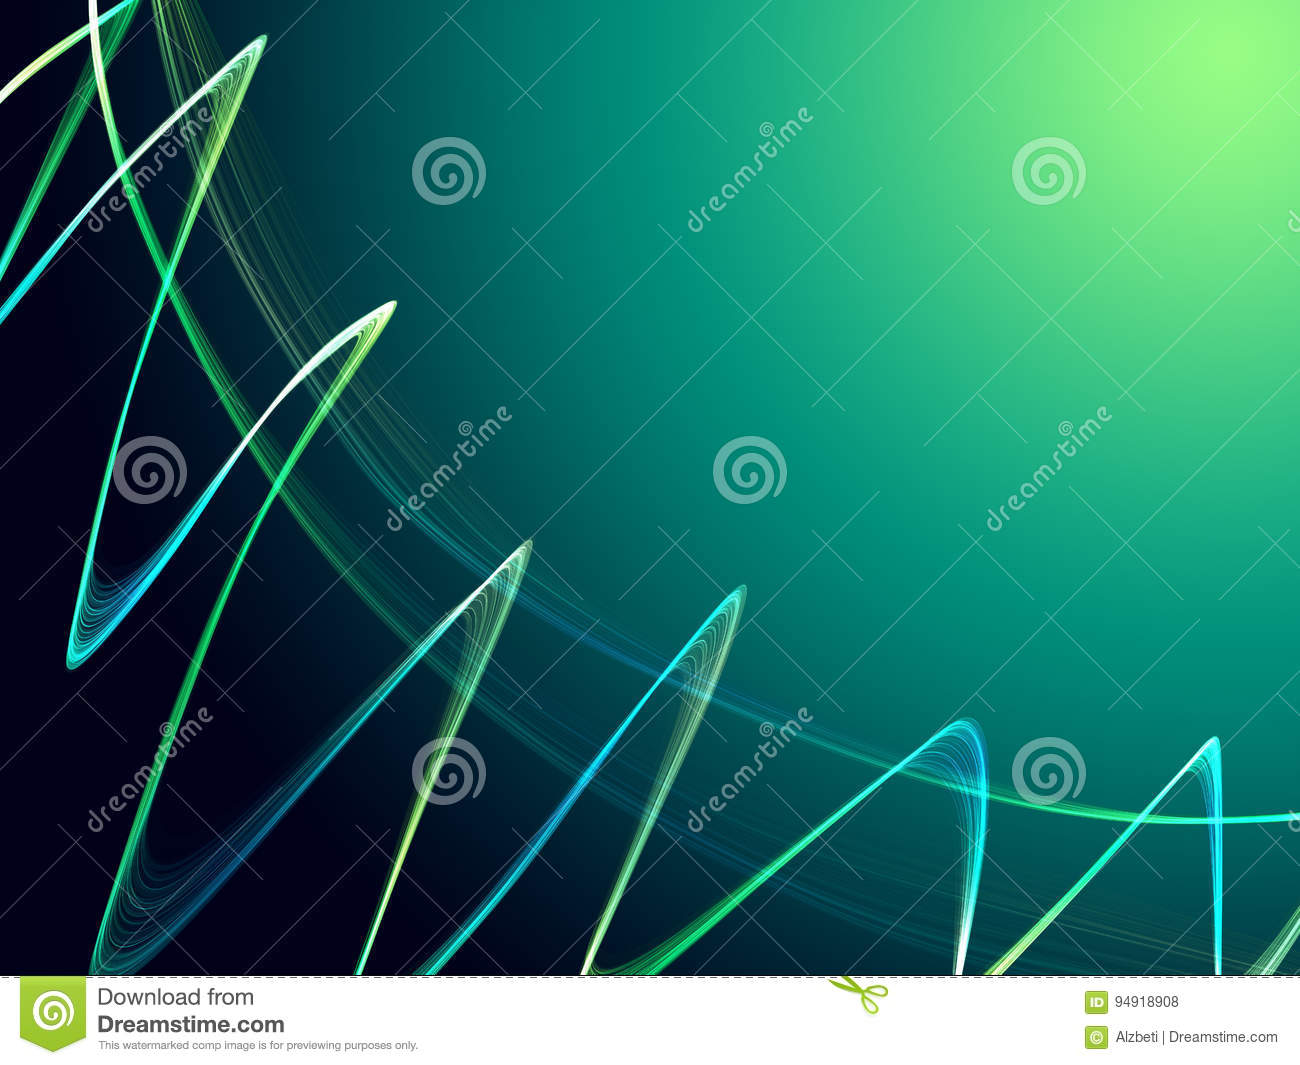 Powerpoint Abstract Background With Abstract Frame Stock Illustration Illustration Of Green Gradient 94918908,Room Wallpaper Design Hd